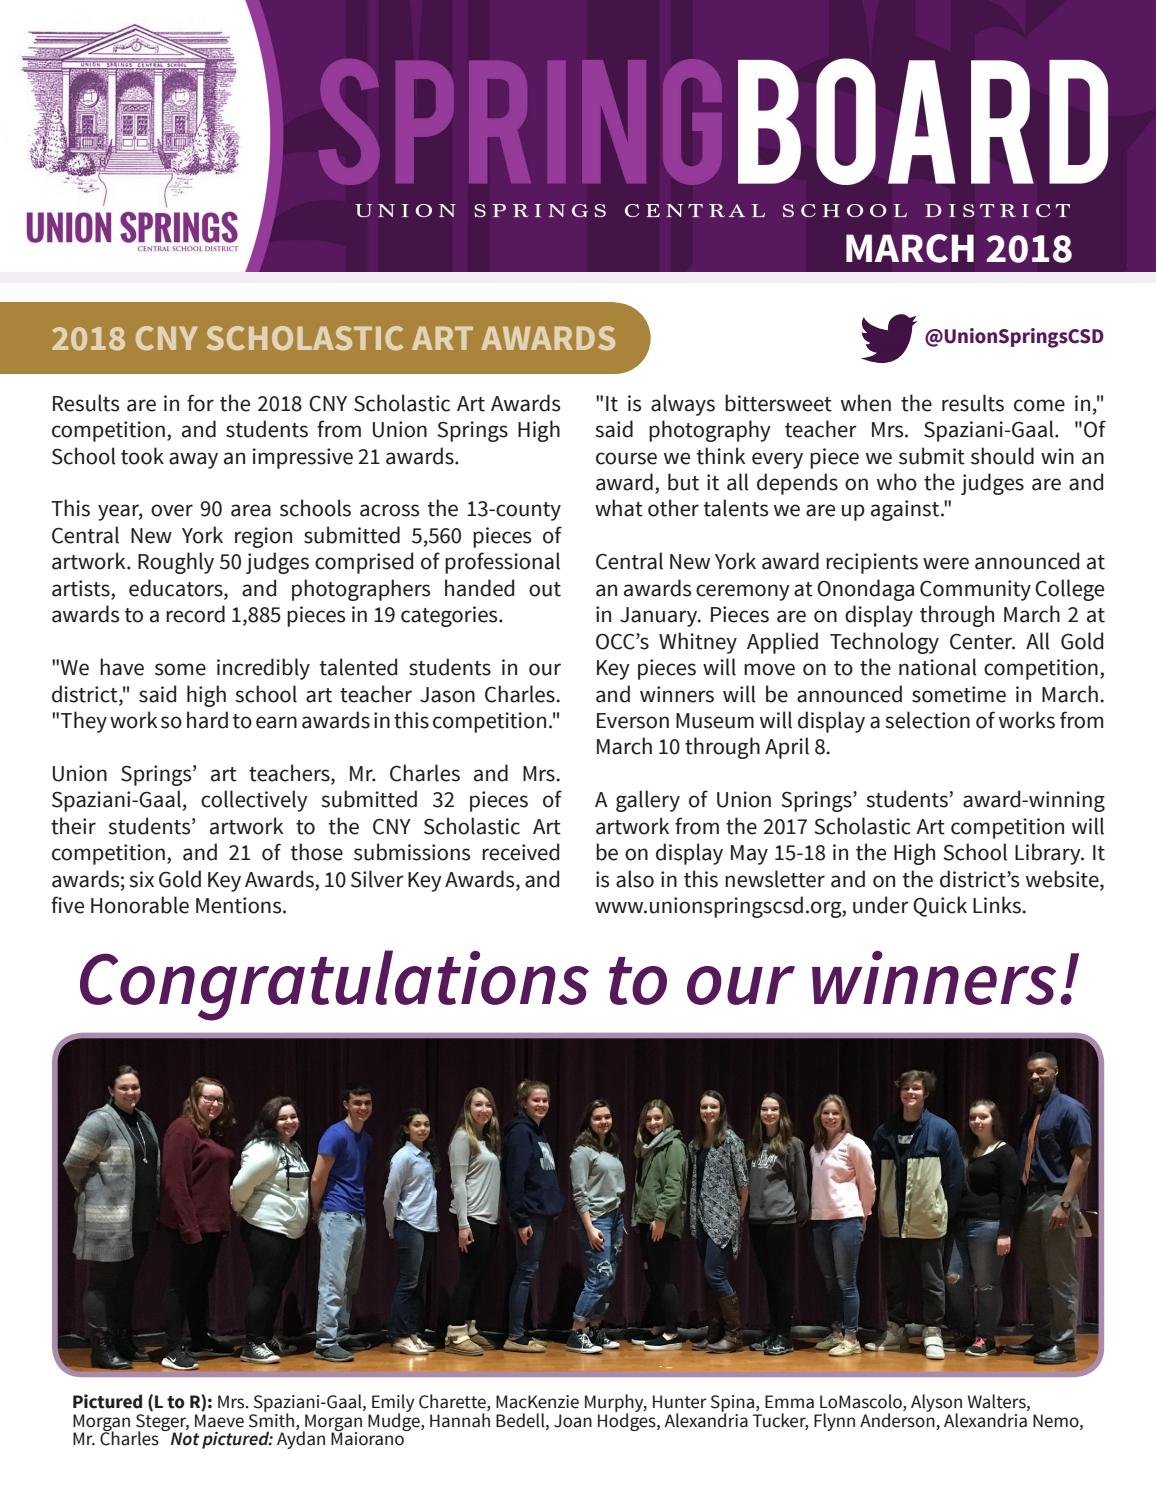 Union Springs Central School District - March 2018